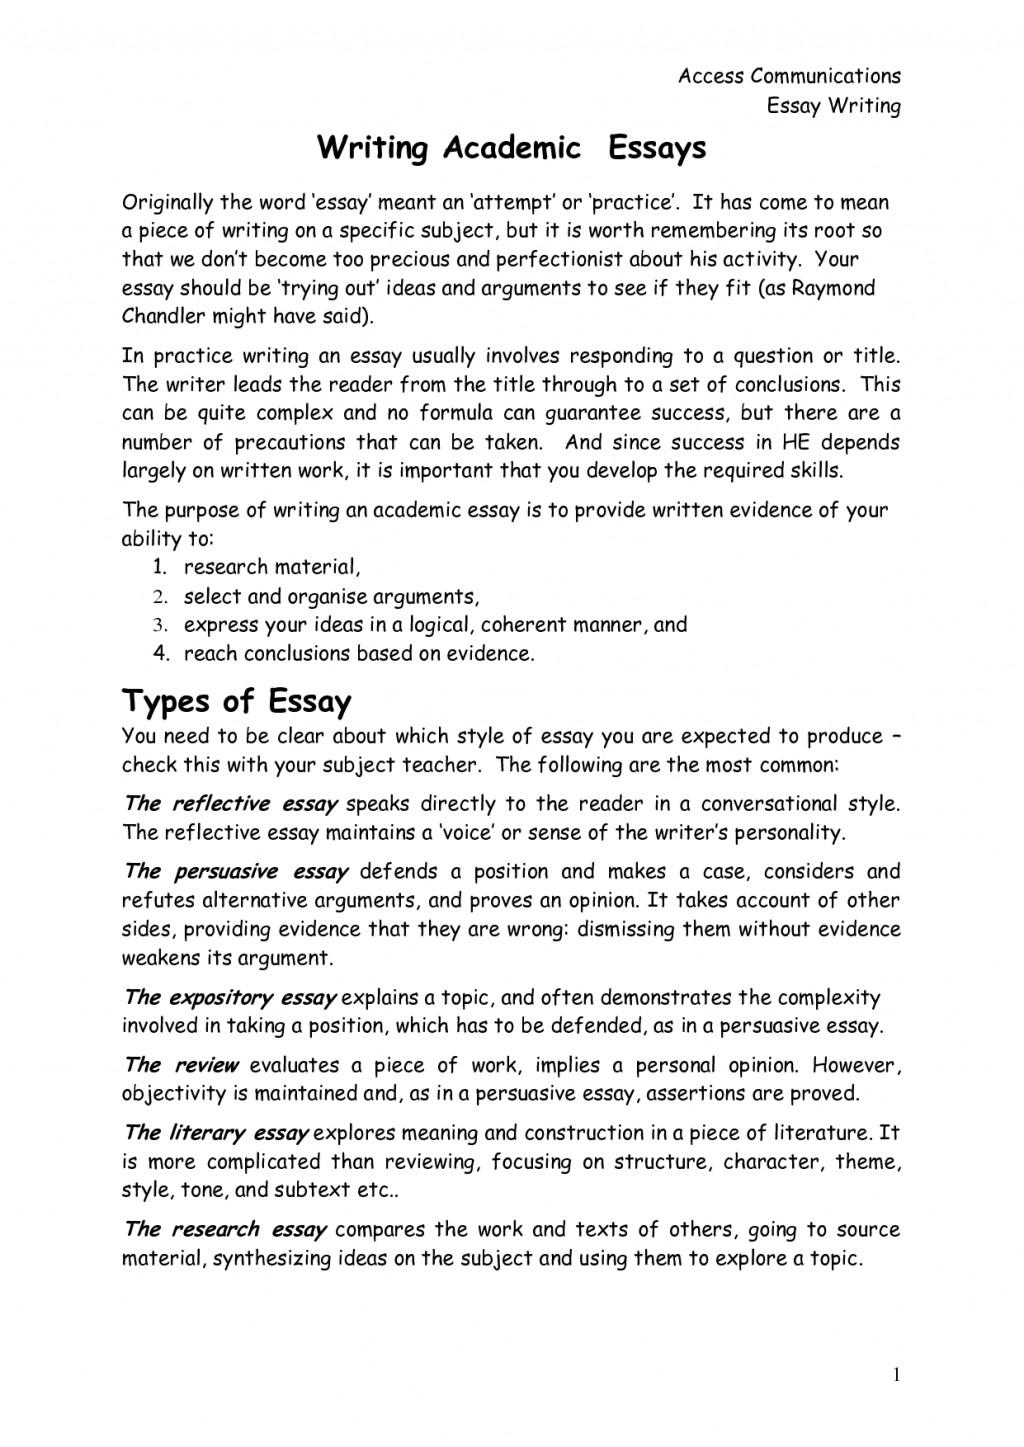 001 Example Academic Research Paper Essay Writing Sample Fuuwz Tense Format Pdf Examples Style Guide Topics Books Fascinating Formal University Samples Harvard Large